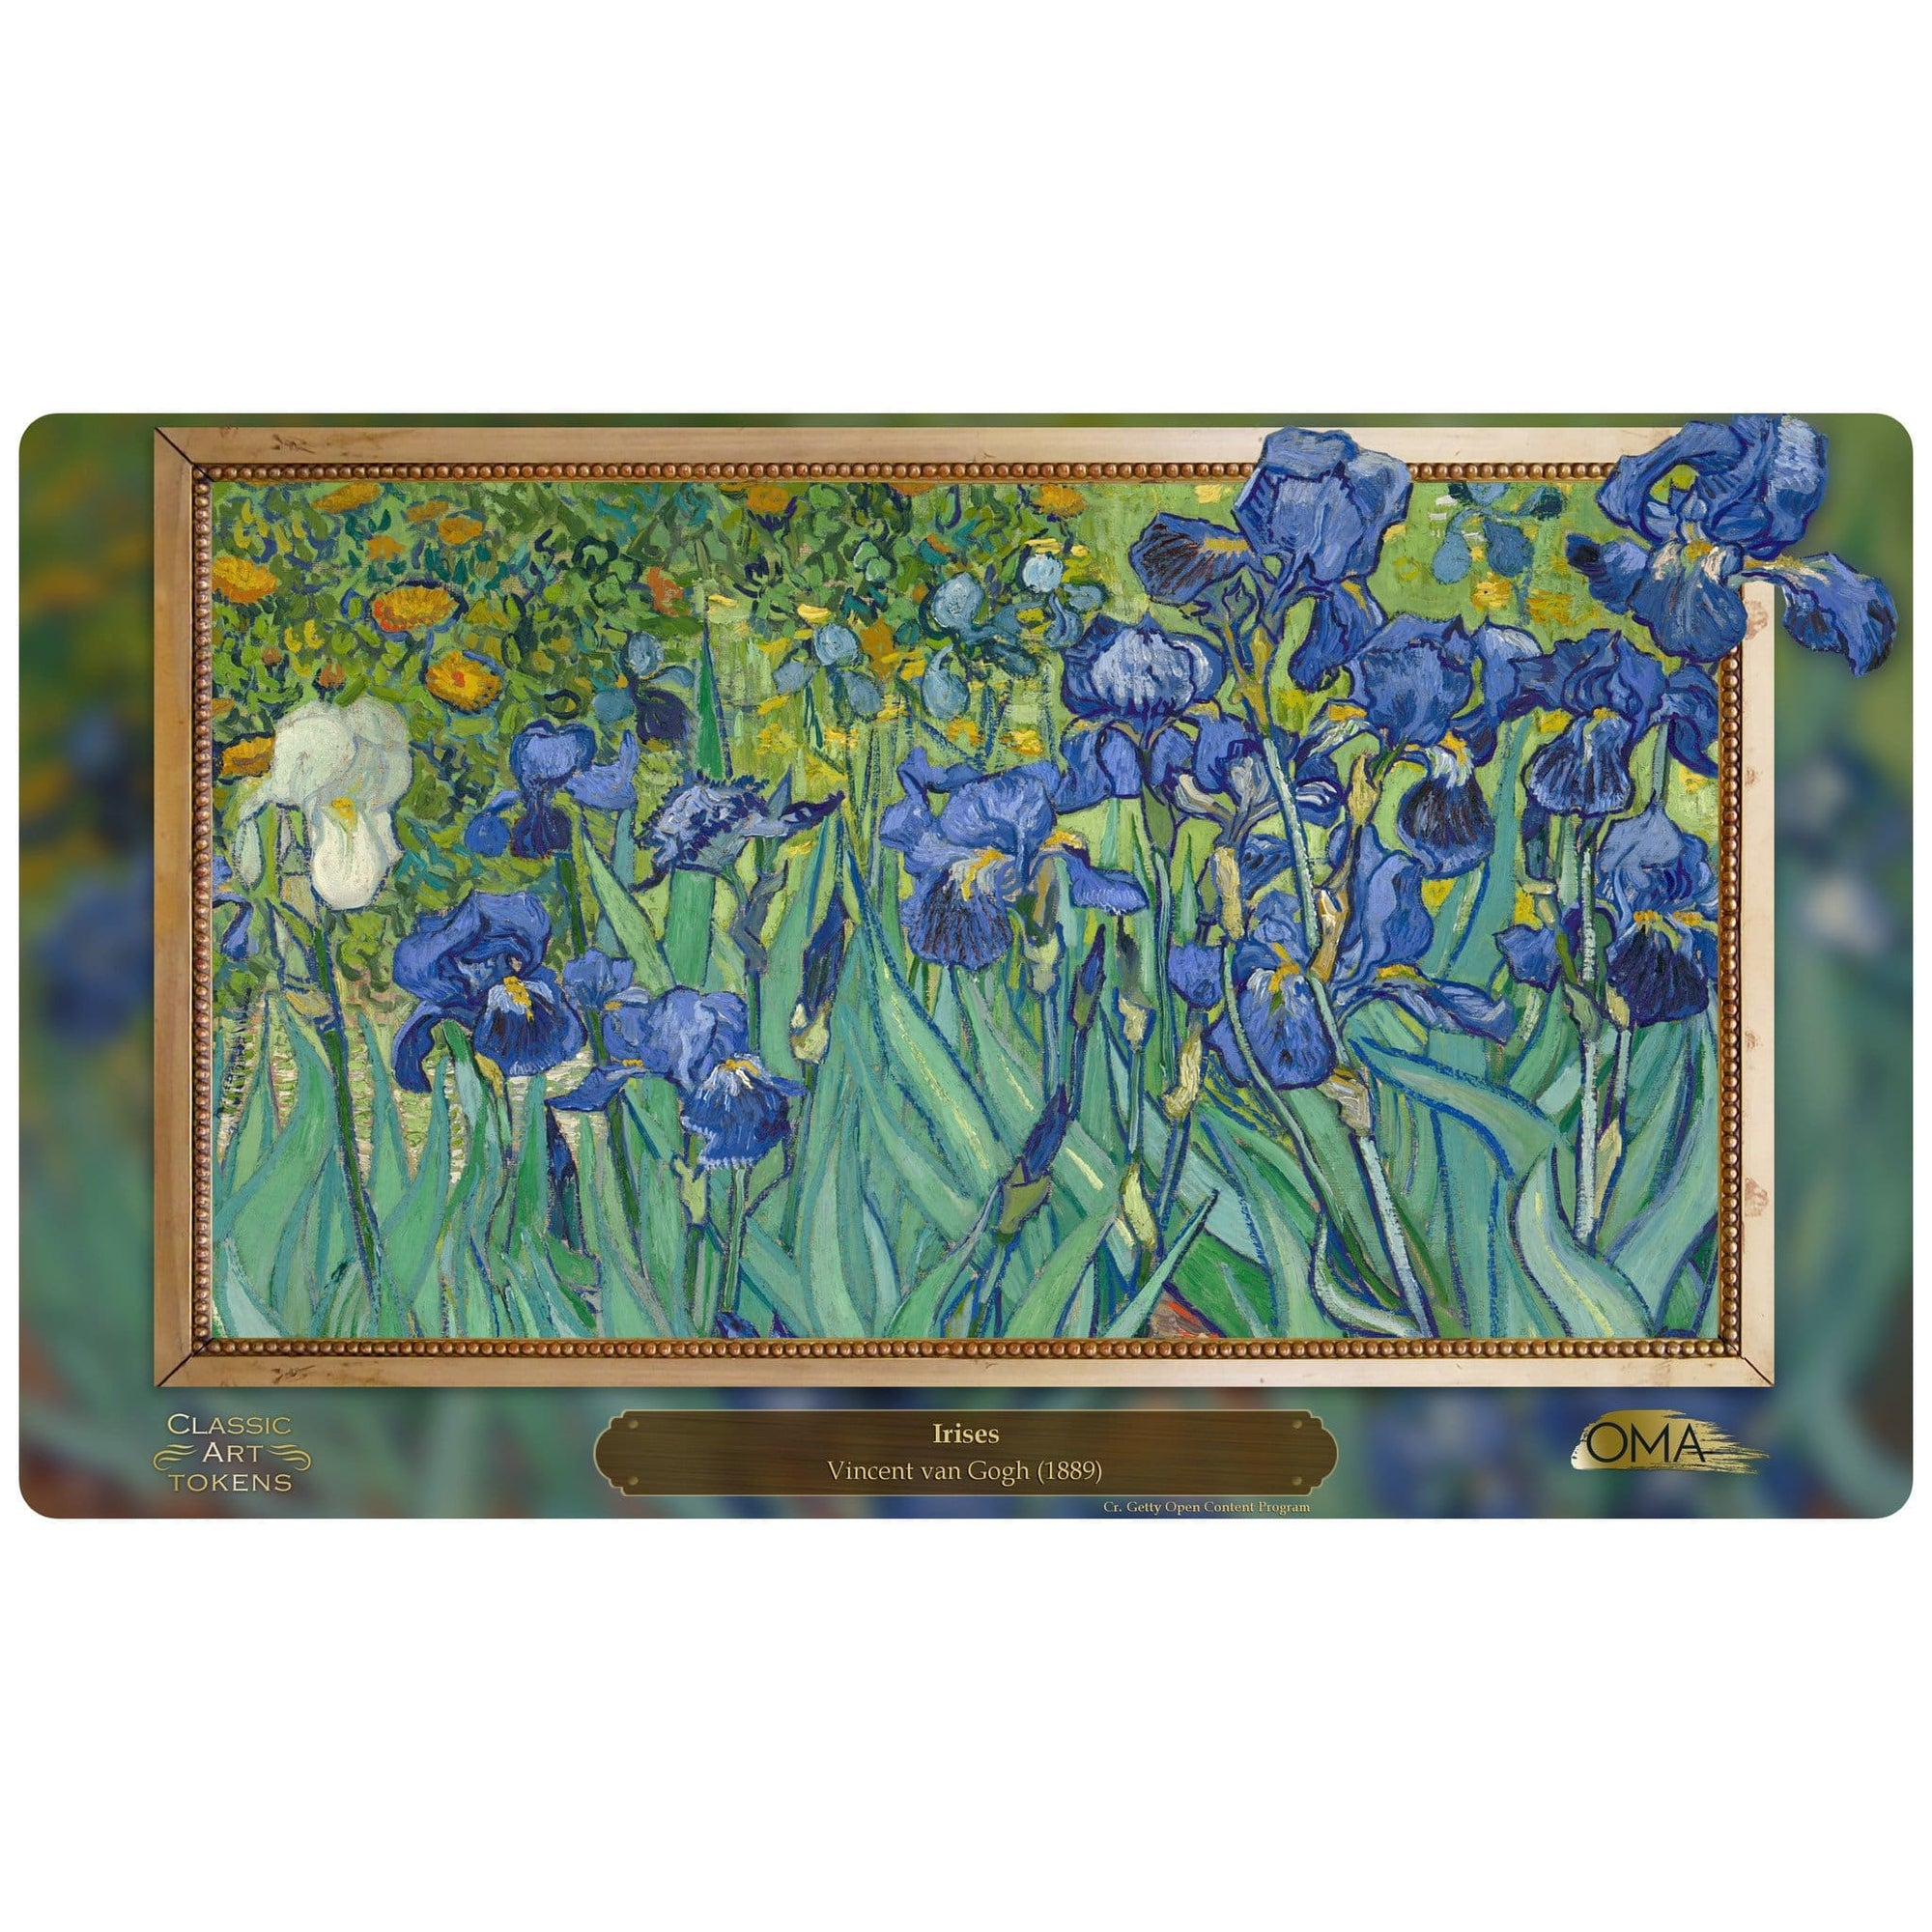 Plant Playmat by Vincent van Gogh - Playmat - Original Magic Art - Accessories for Magic the Gathering and other card games